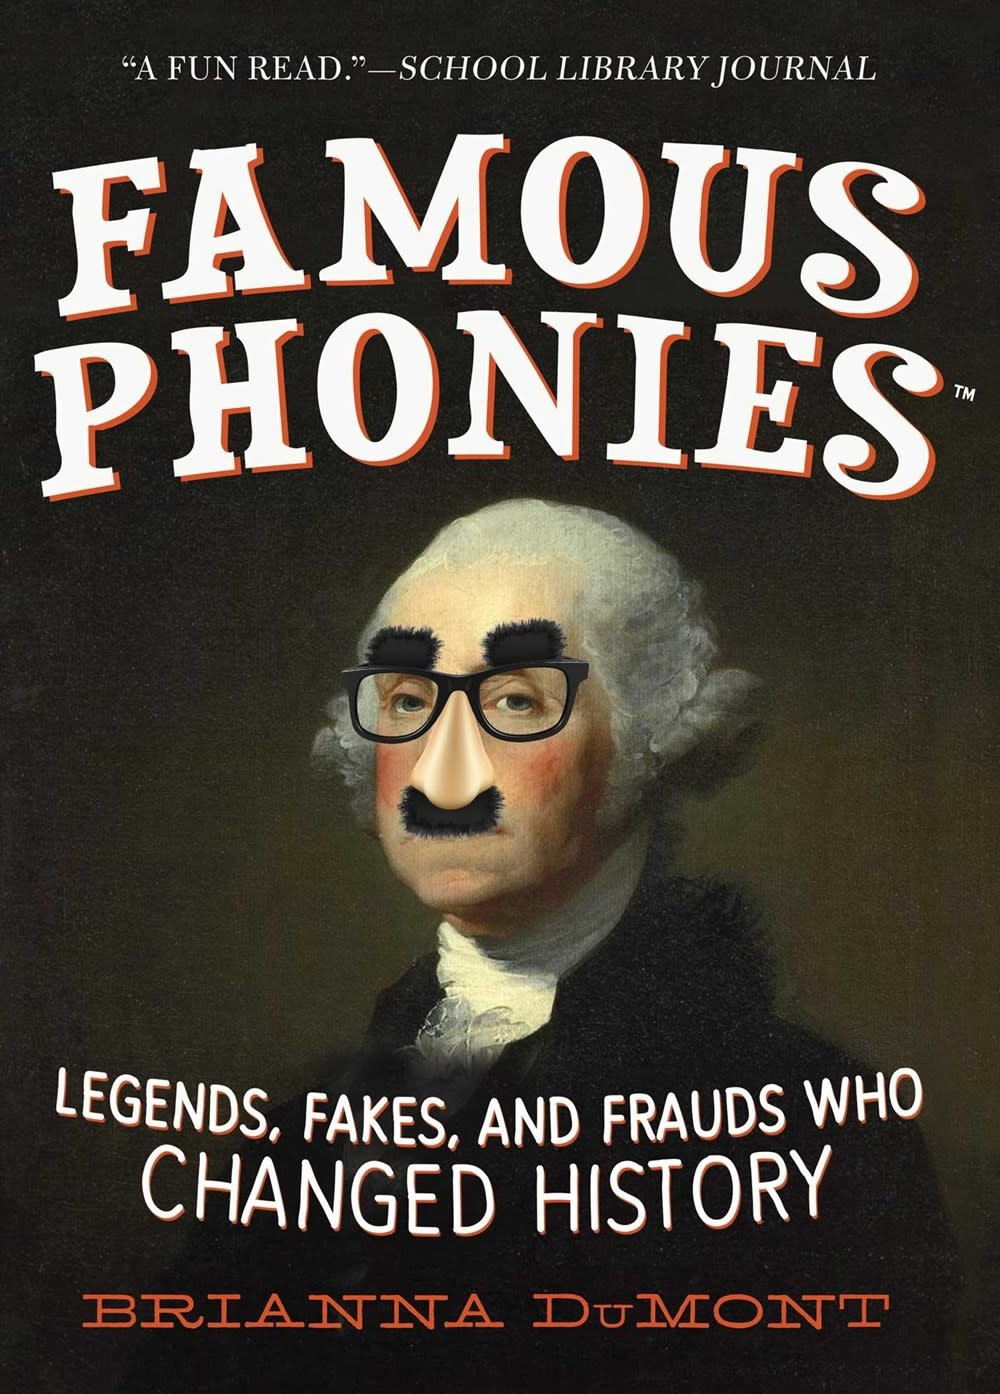 Sky Pony Famous Phonies: Legends, Fakes, and Frauds Who Changed History